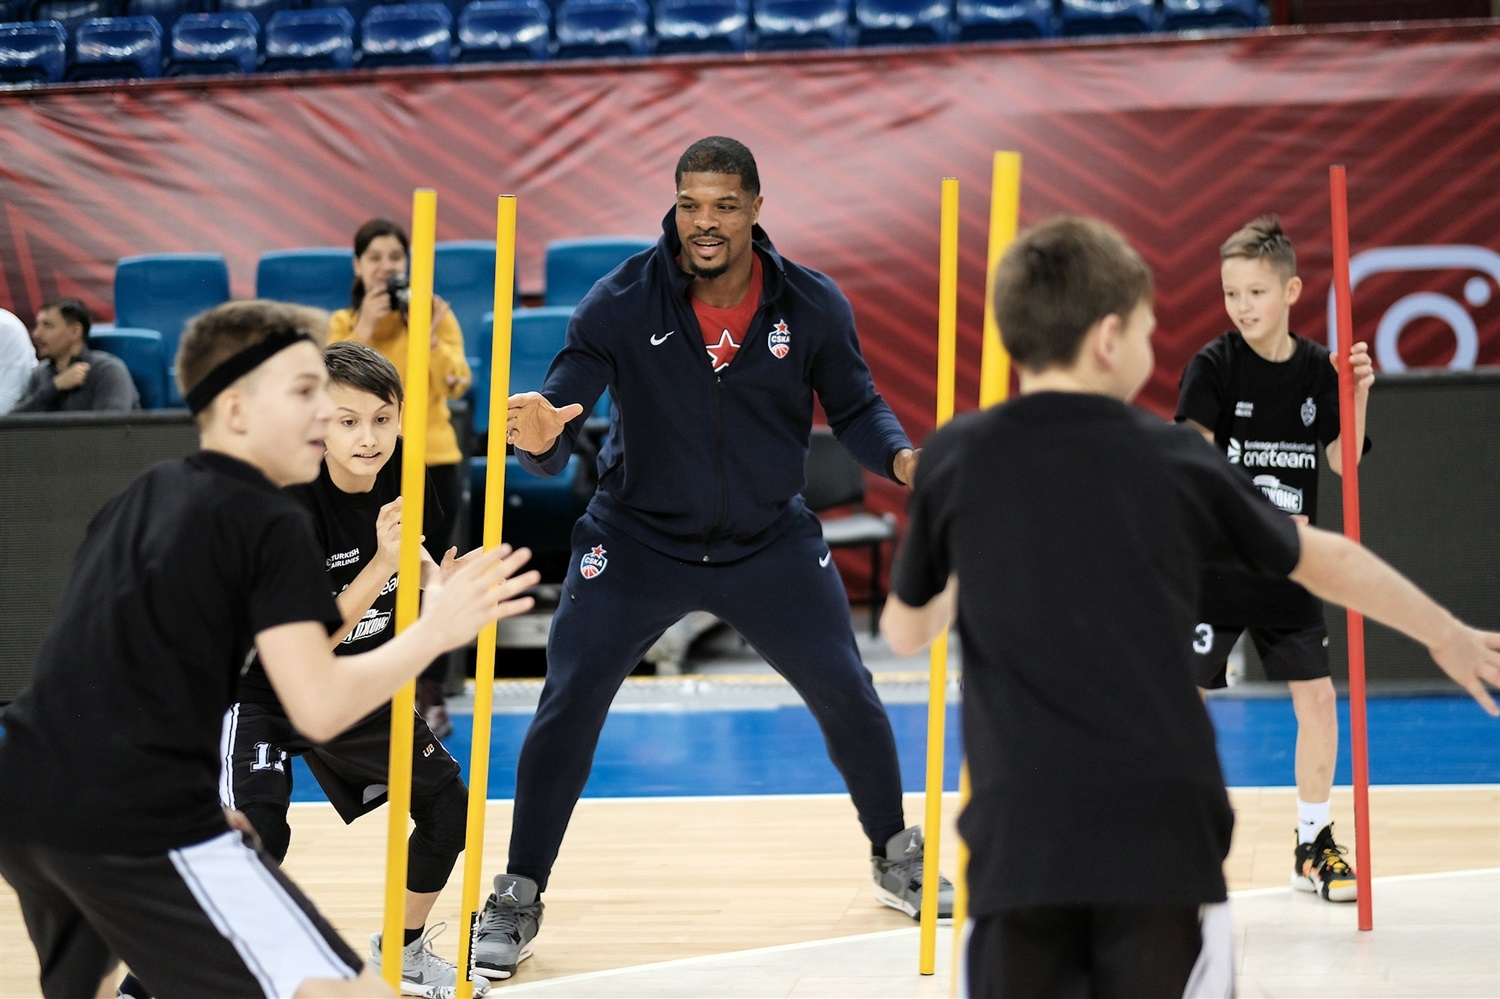 Kyle Hines, One team session in Kaliningrad - CSKA Moscow - JT19